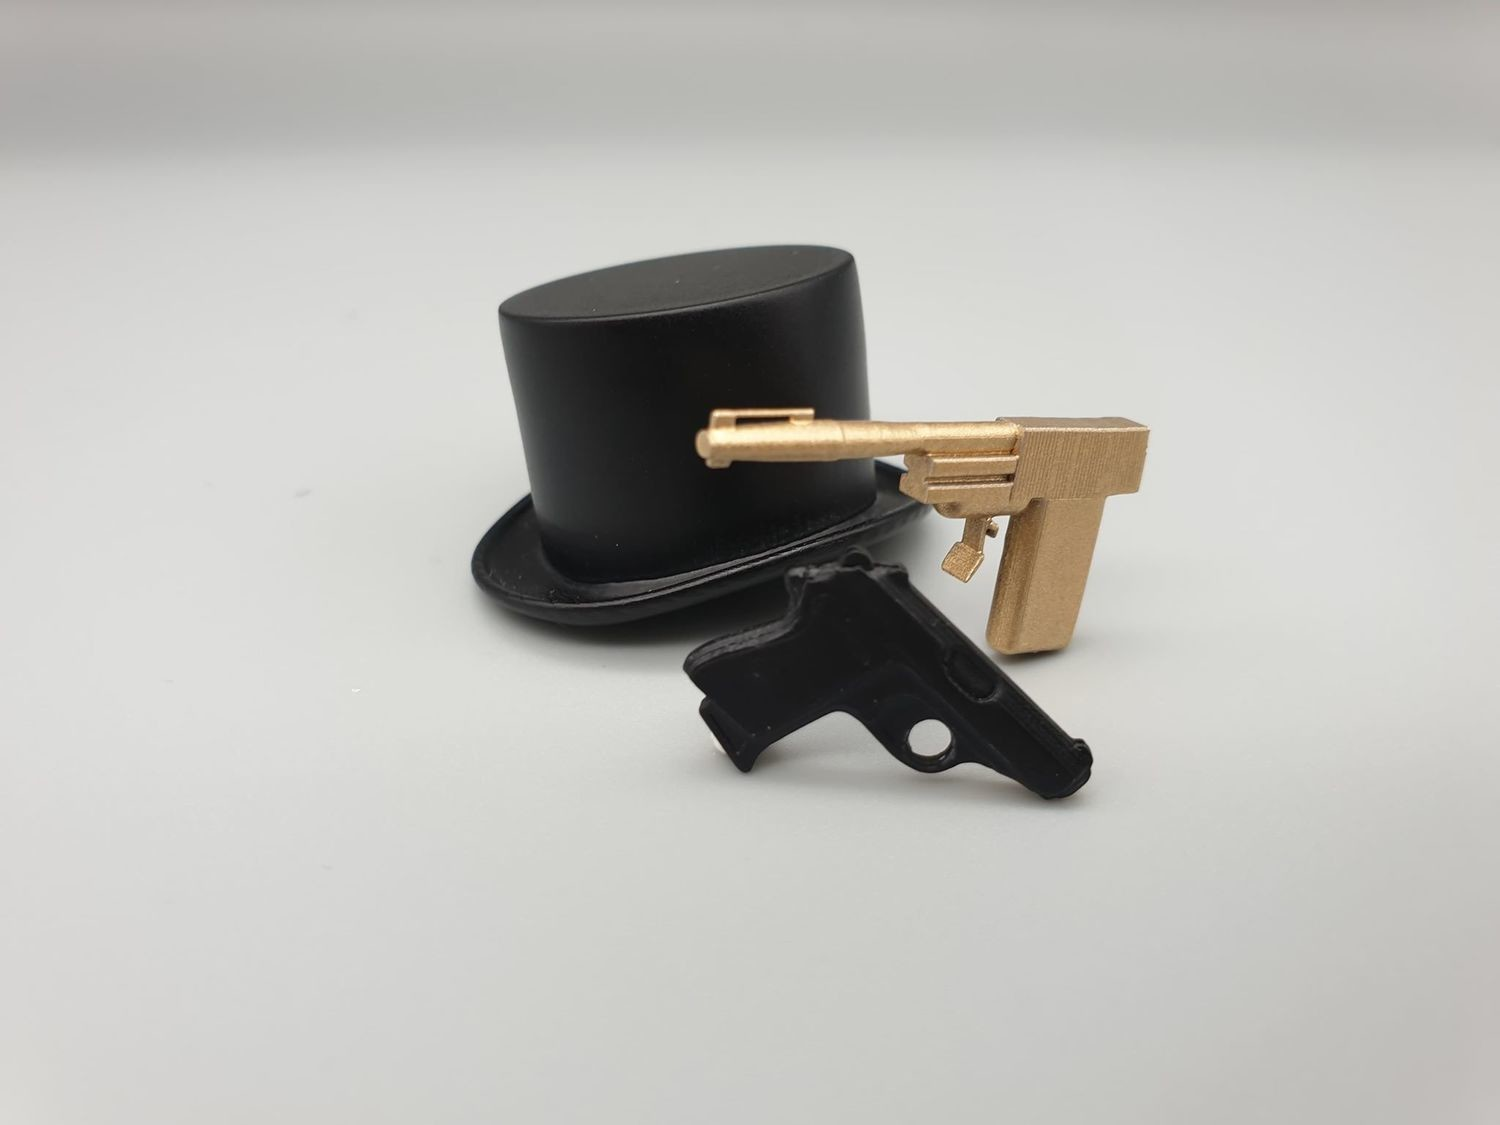 James Bond Miniature Set Special Edition props 1:8